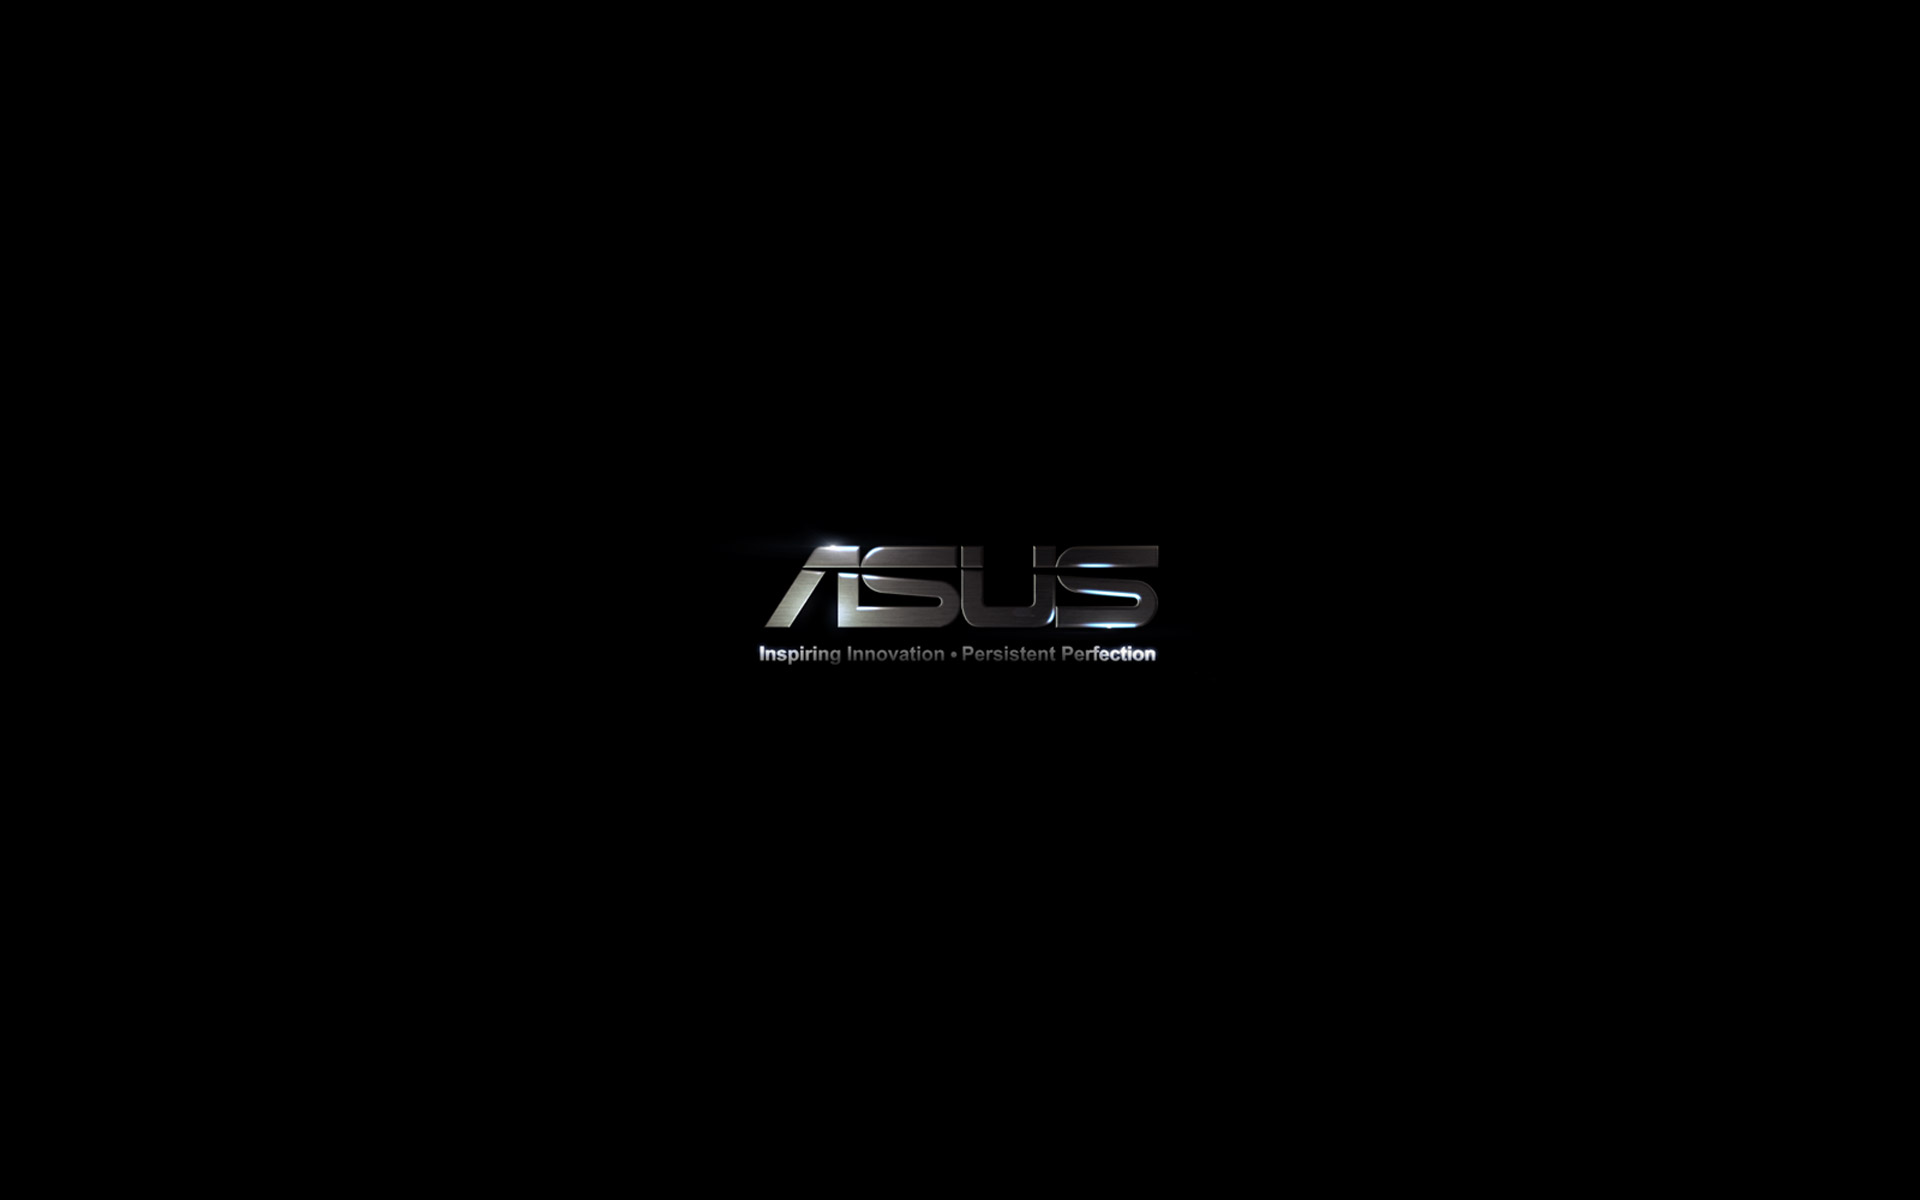 asus wallpaper hd related - photo #7